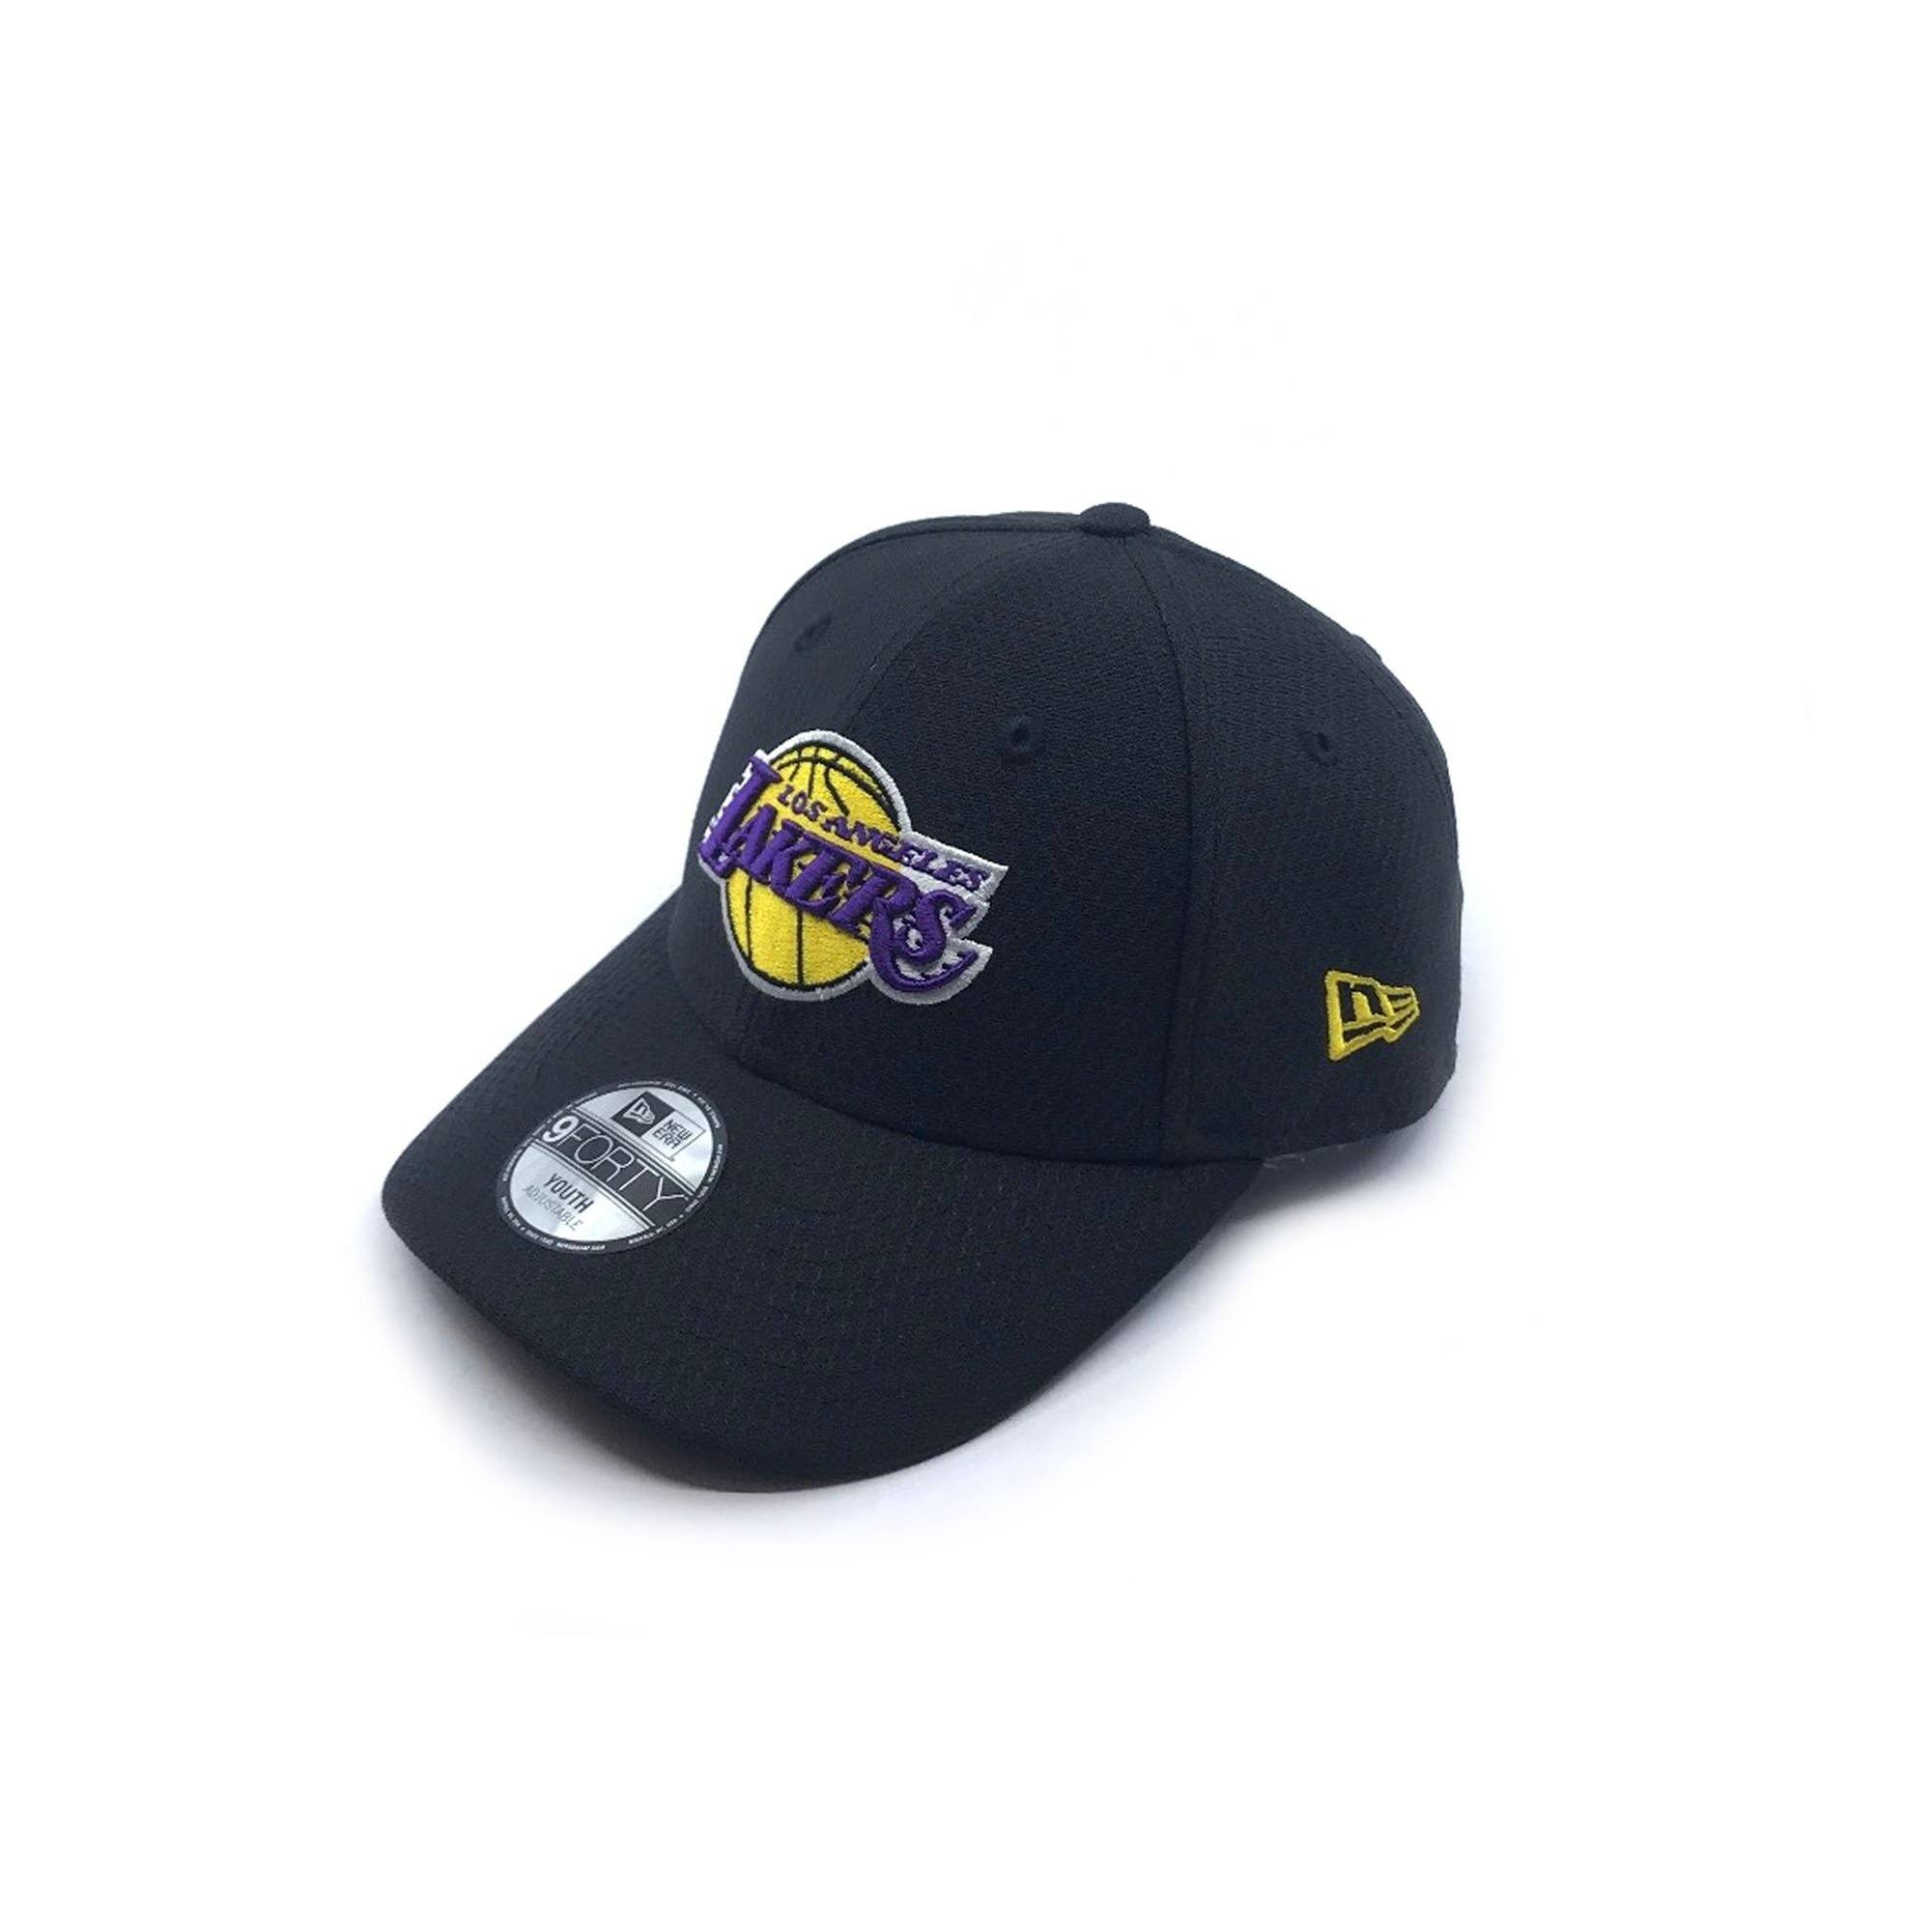 New Era Youth 9FORTY Snapback - Los Angeles Lakers - Black Hex SP-Headwear-Caps New Era